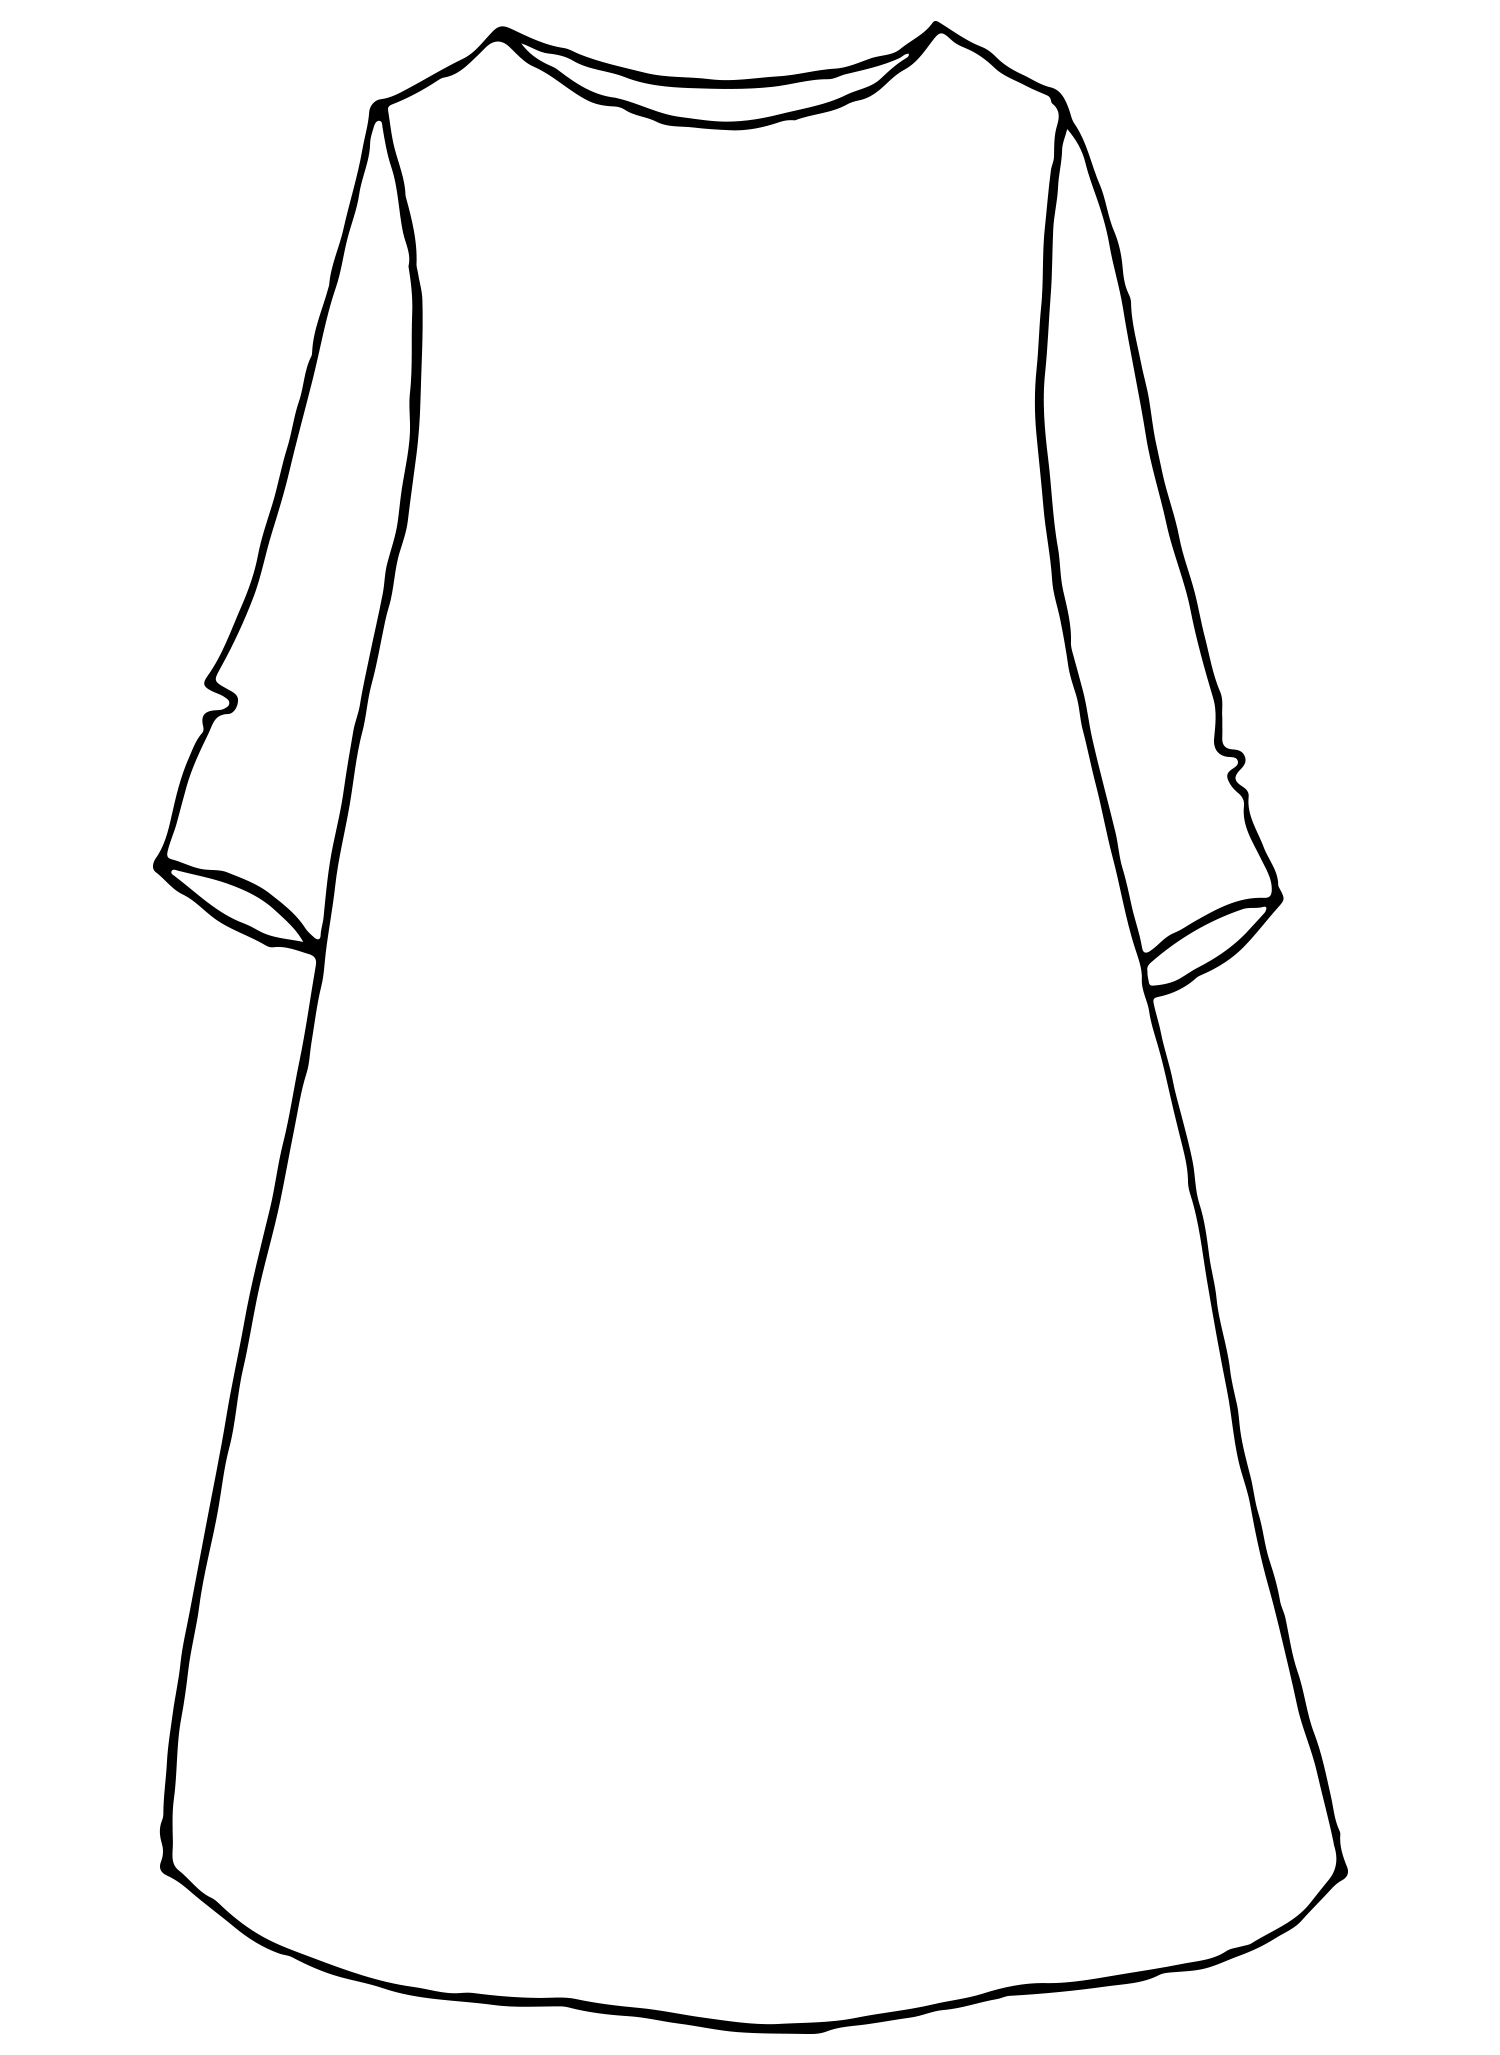 Must Have Dress sketch image